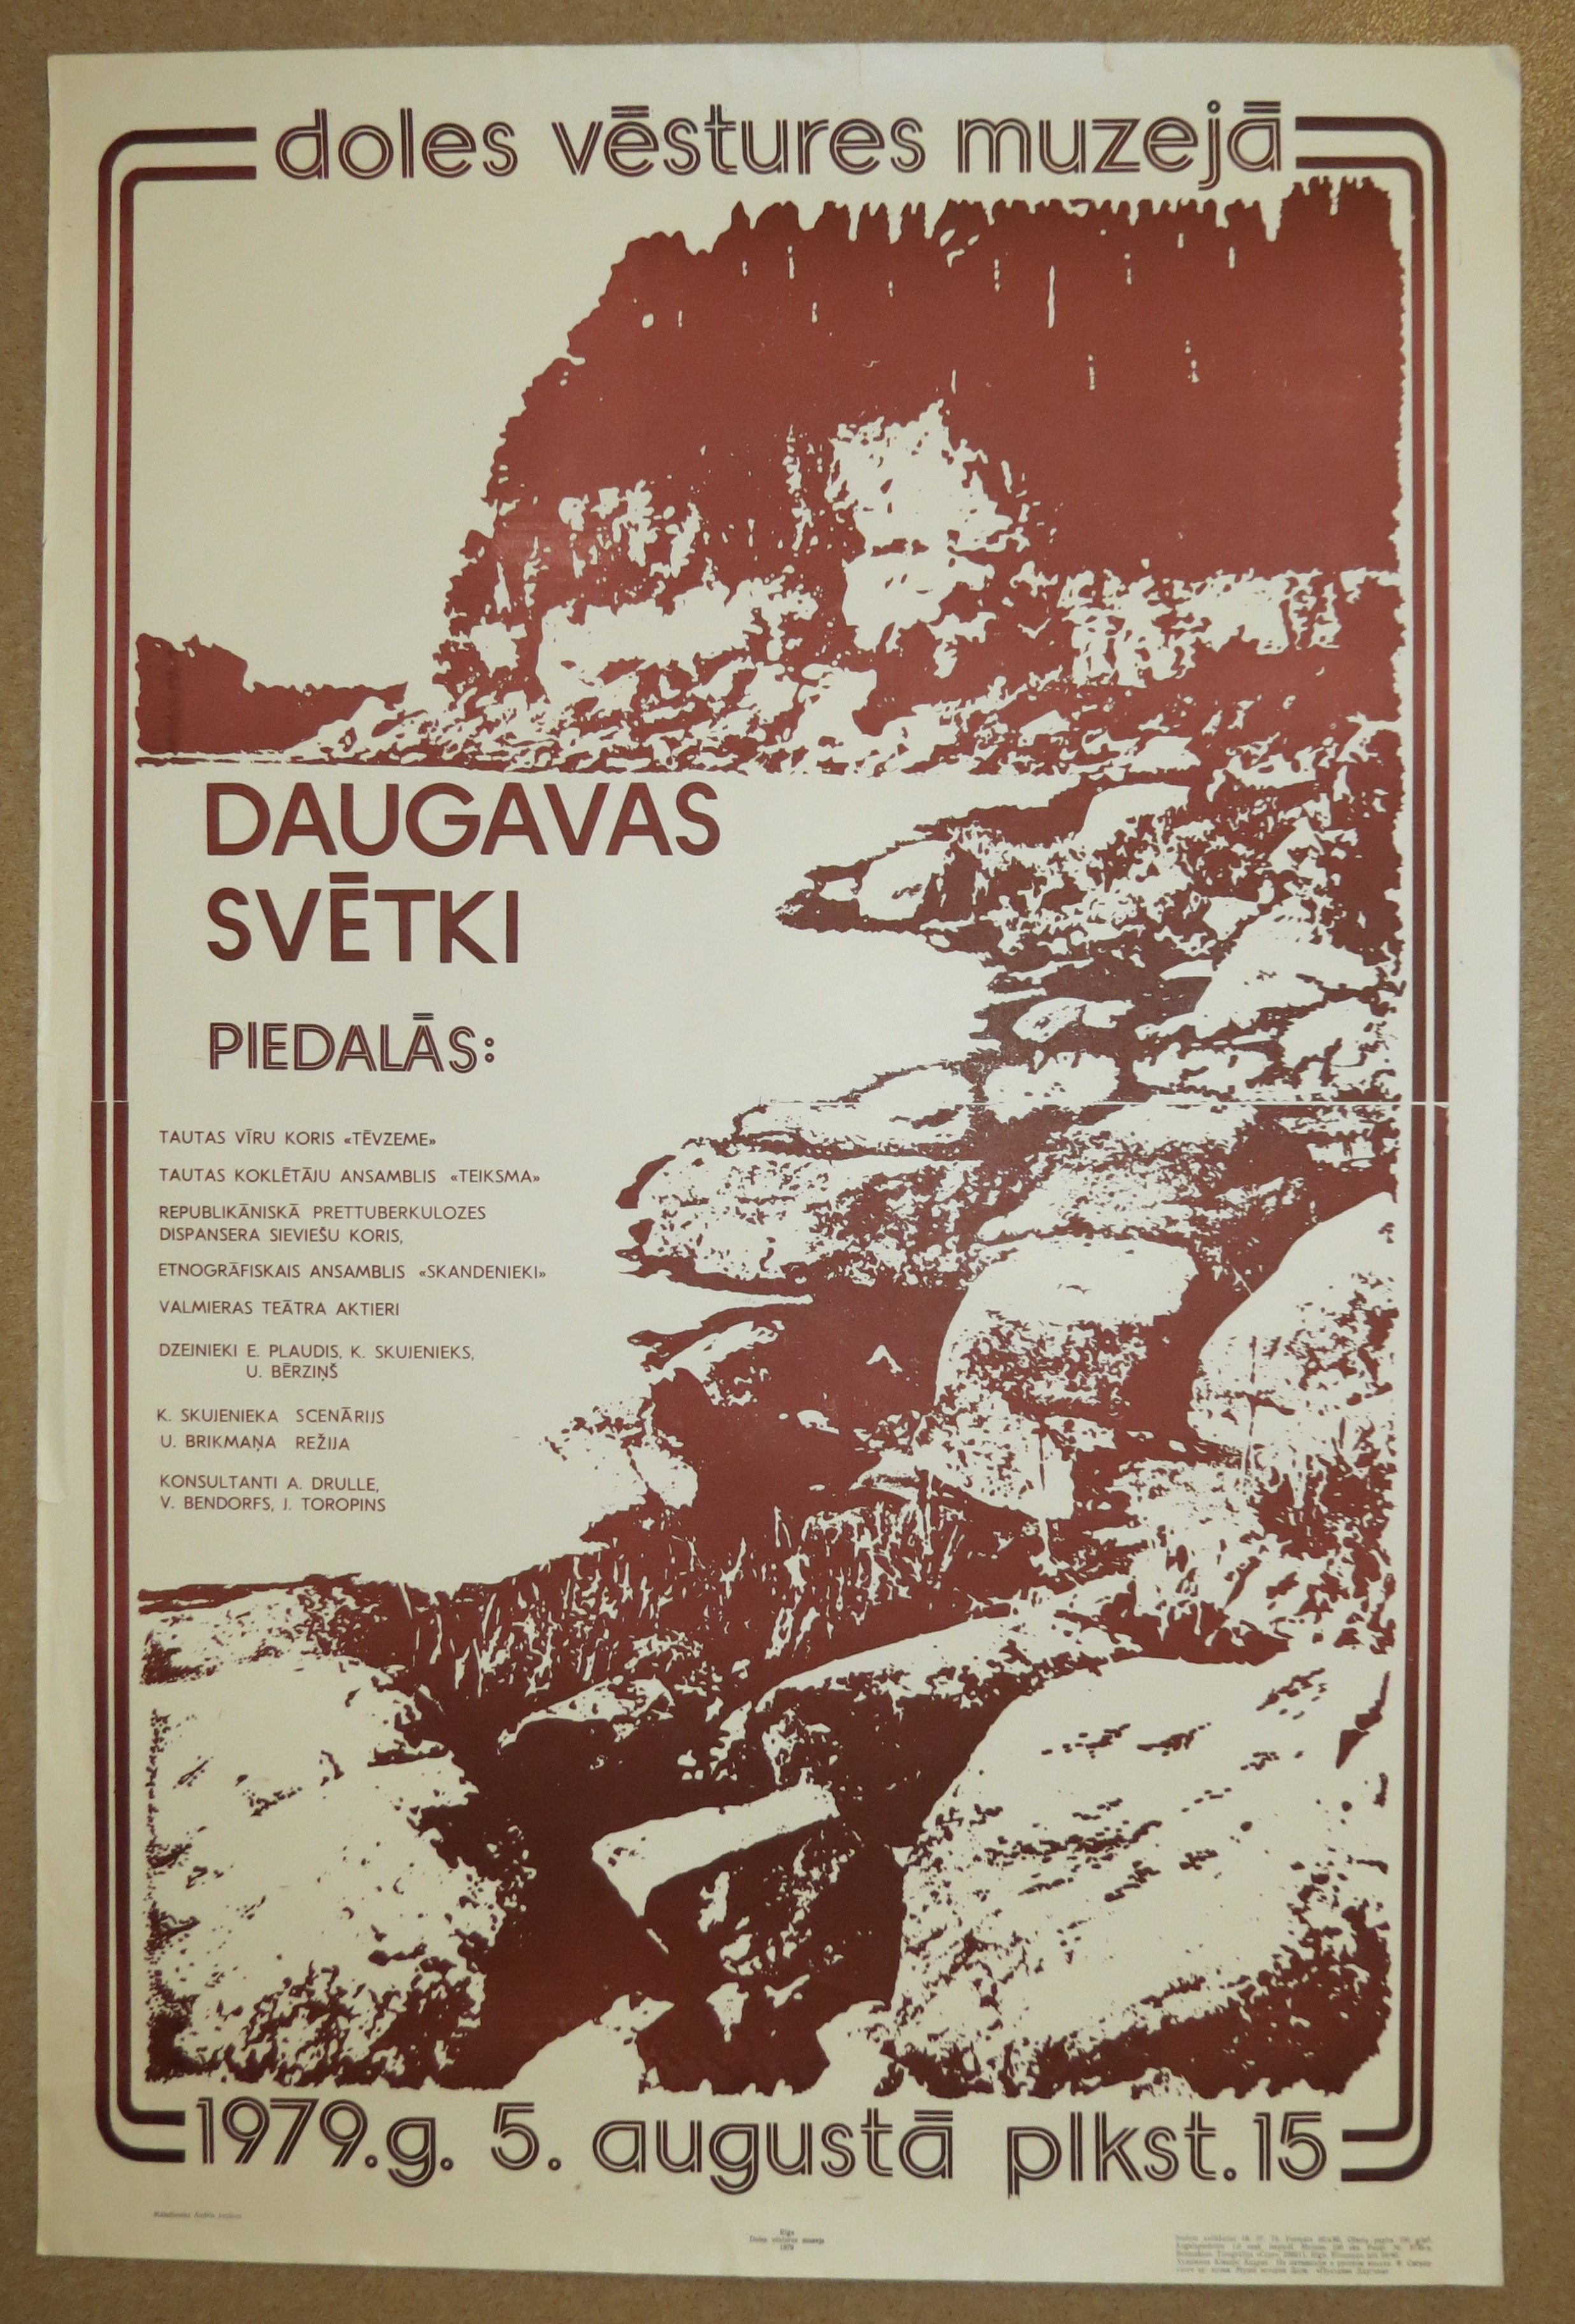 Poster of The First River Daugava Festivity in the Dole History Museum. 5 Aug 1979. Author: Andris Junkers